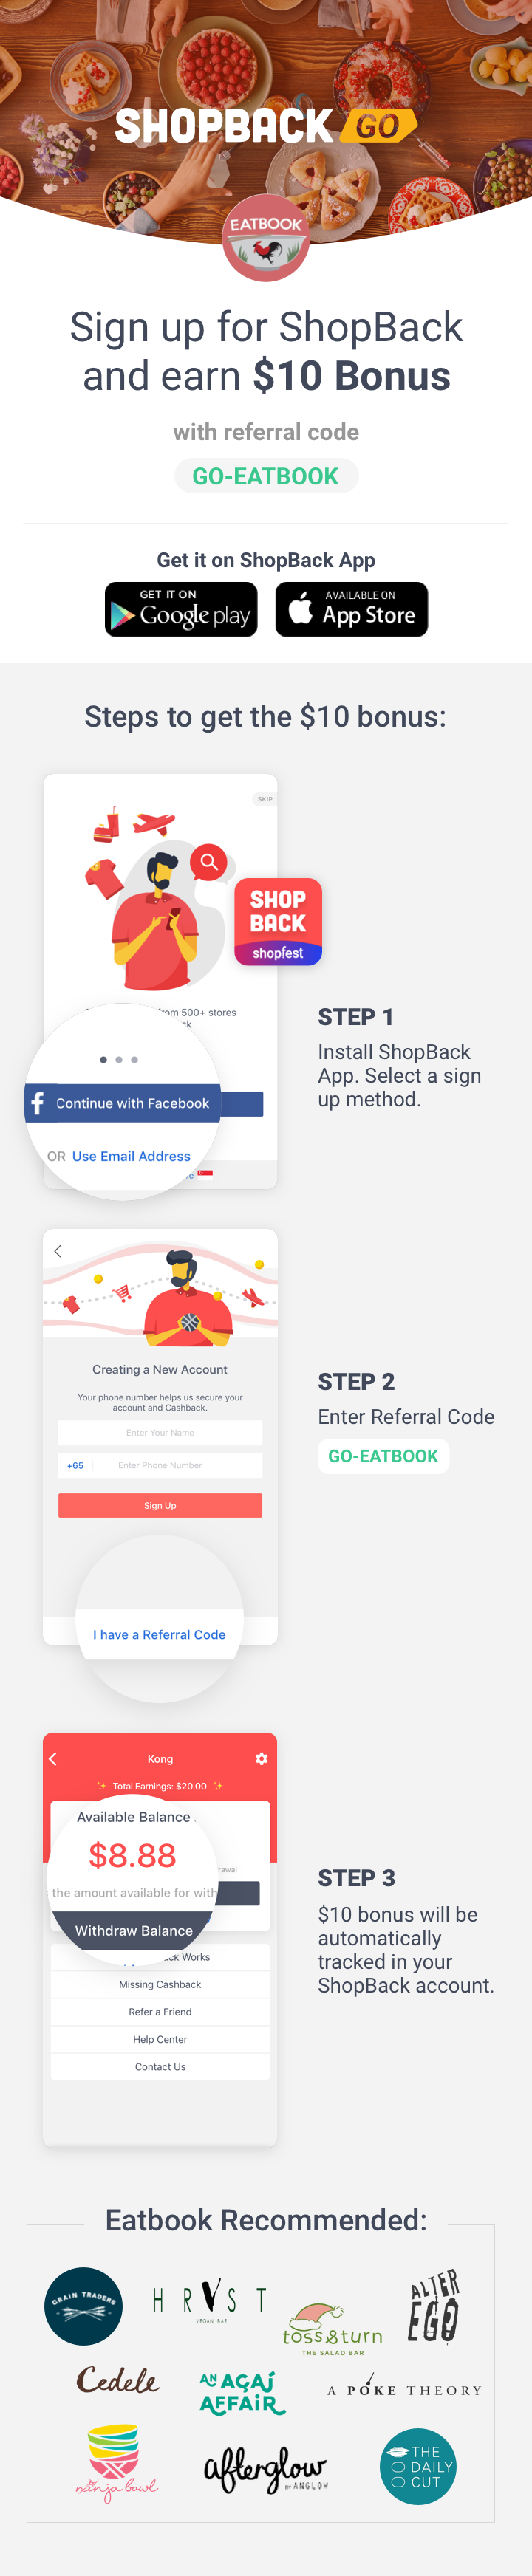 ShopBack GO x Eatbook